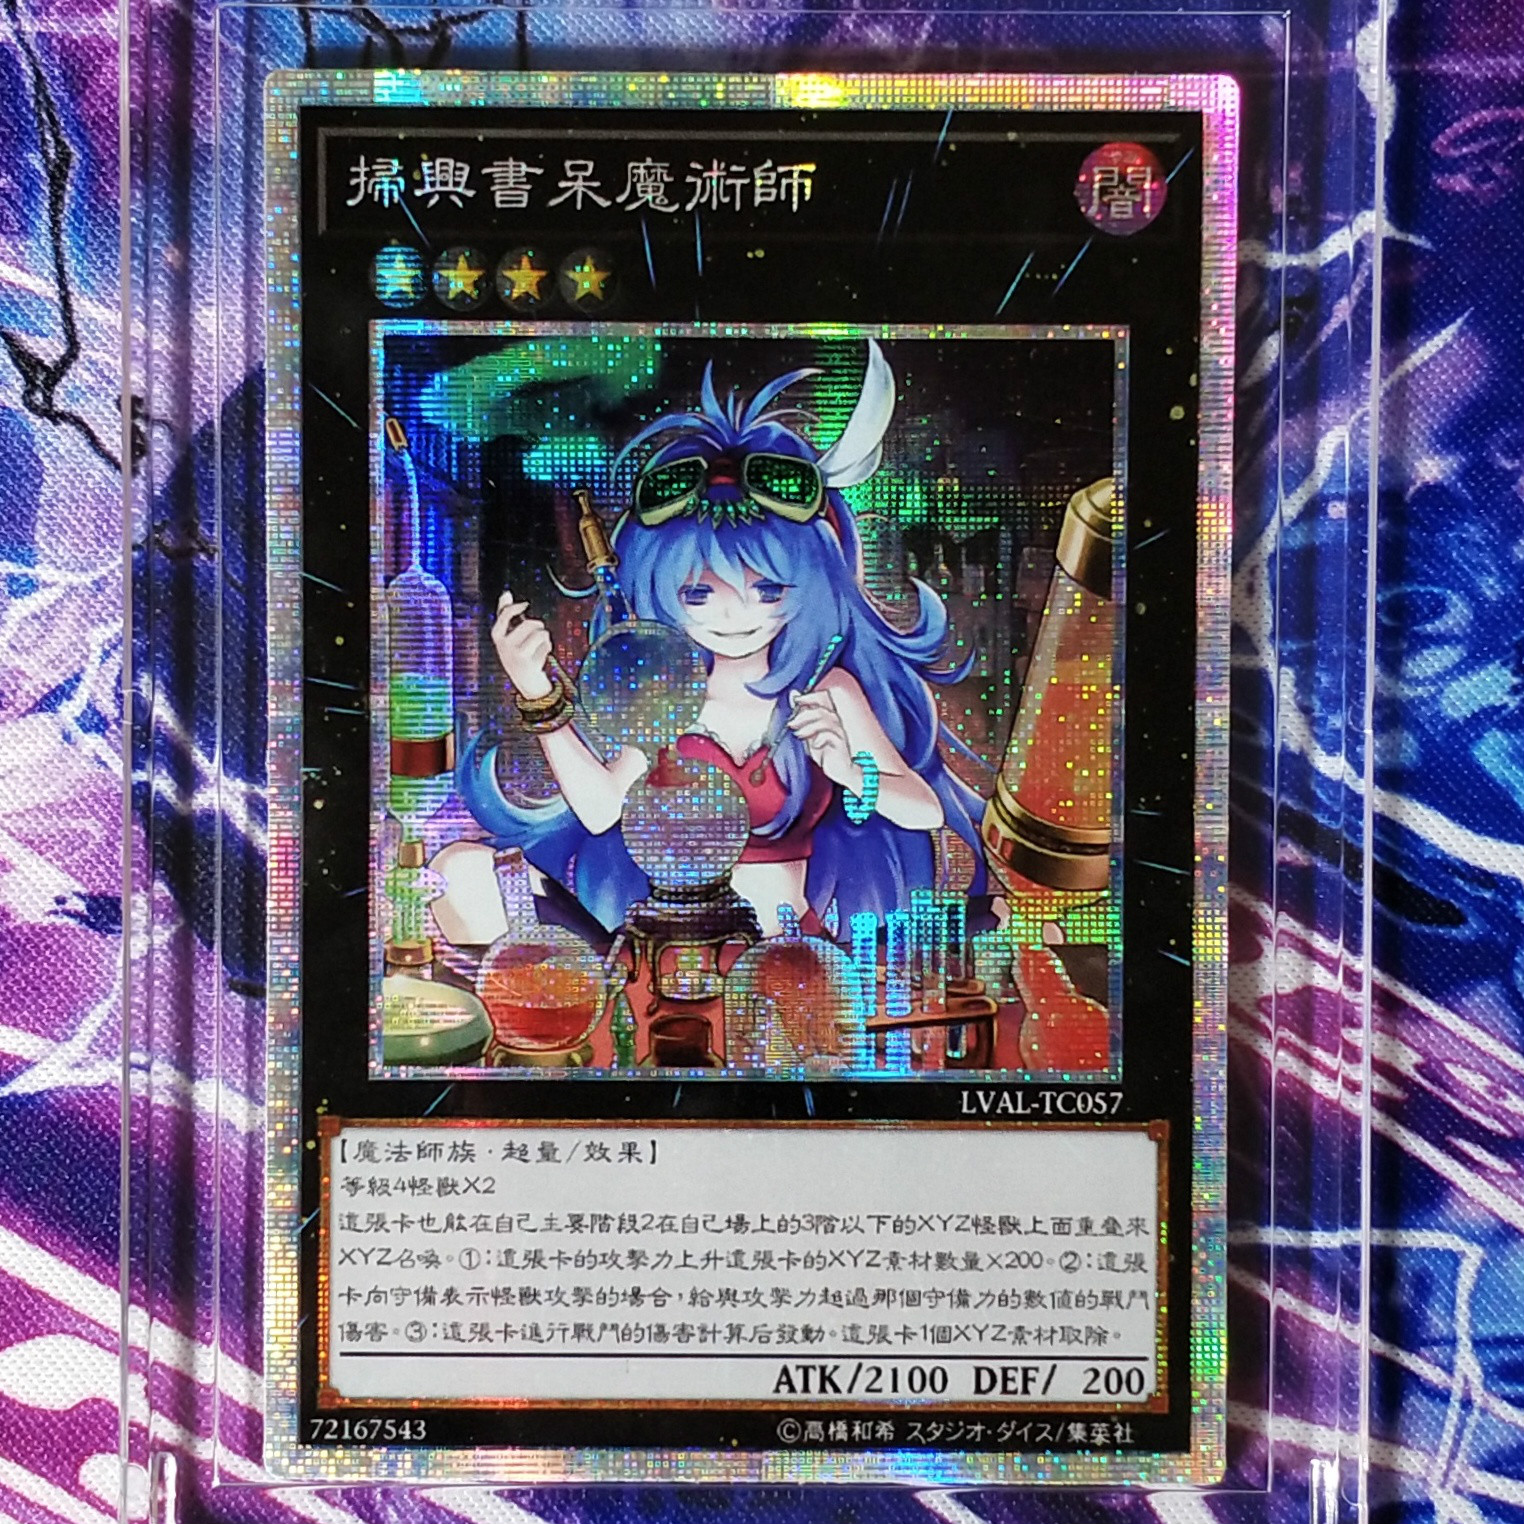 Yu Gi Oh Downerd Magician DIY Colorful Toys Hobbies Hobby Collectibles Game Collection Anime Cards